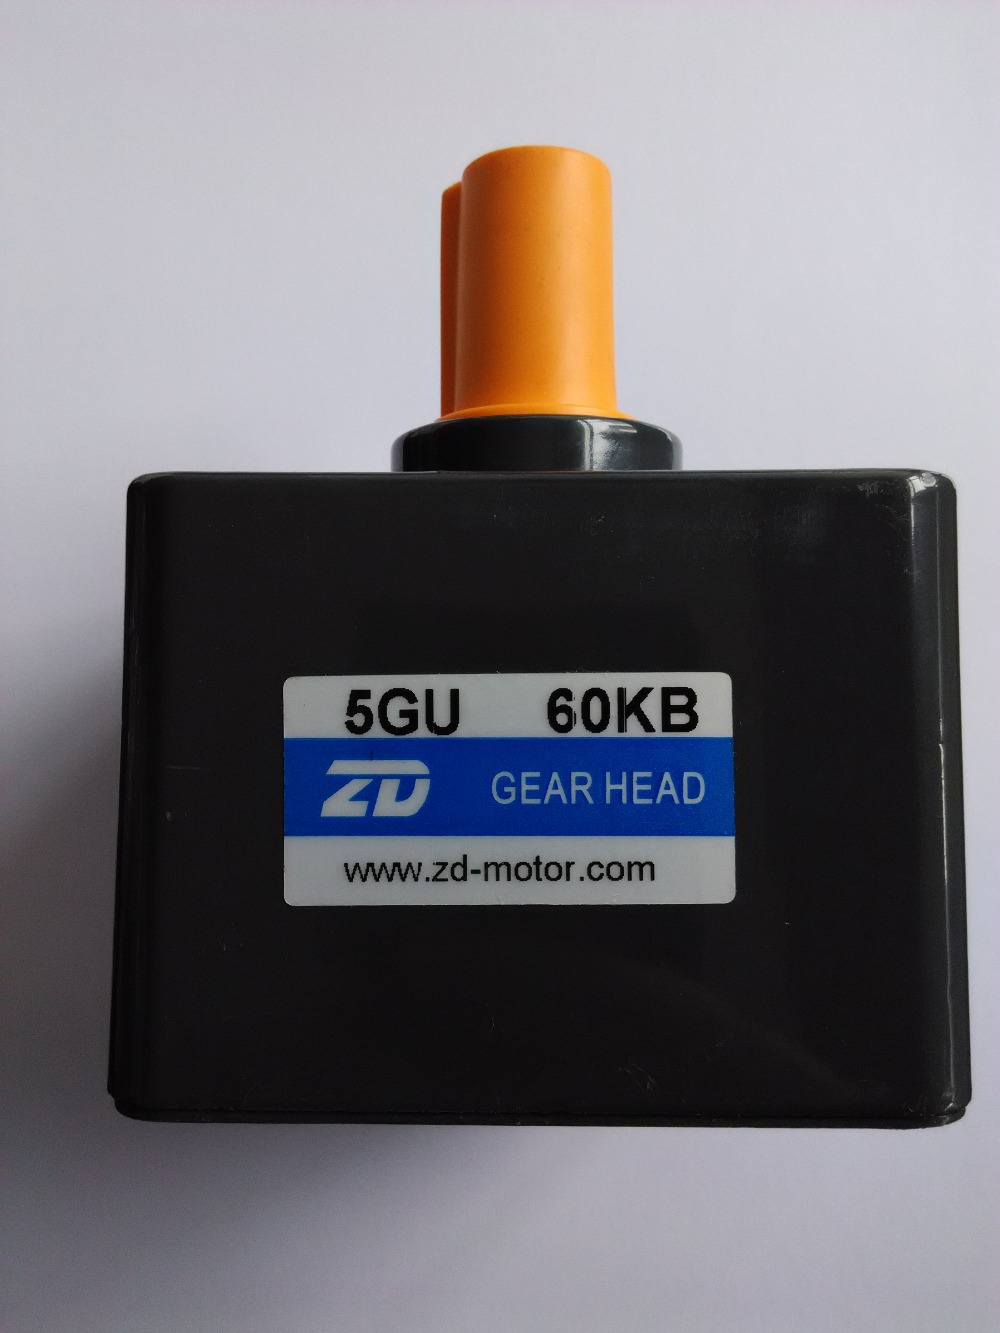 1:200 Gear case with a  condensator use for 15W 220V AC  reversible gear motor spur gearbox small reducer ratio 200:1 gearhead 60w ac reversible motor 5rk60gu cf with gear ratio 90 1 output speed is 15 r m gear head 5rgu 90k